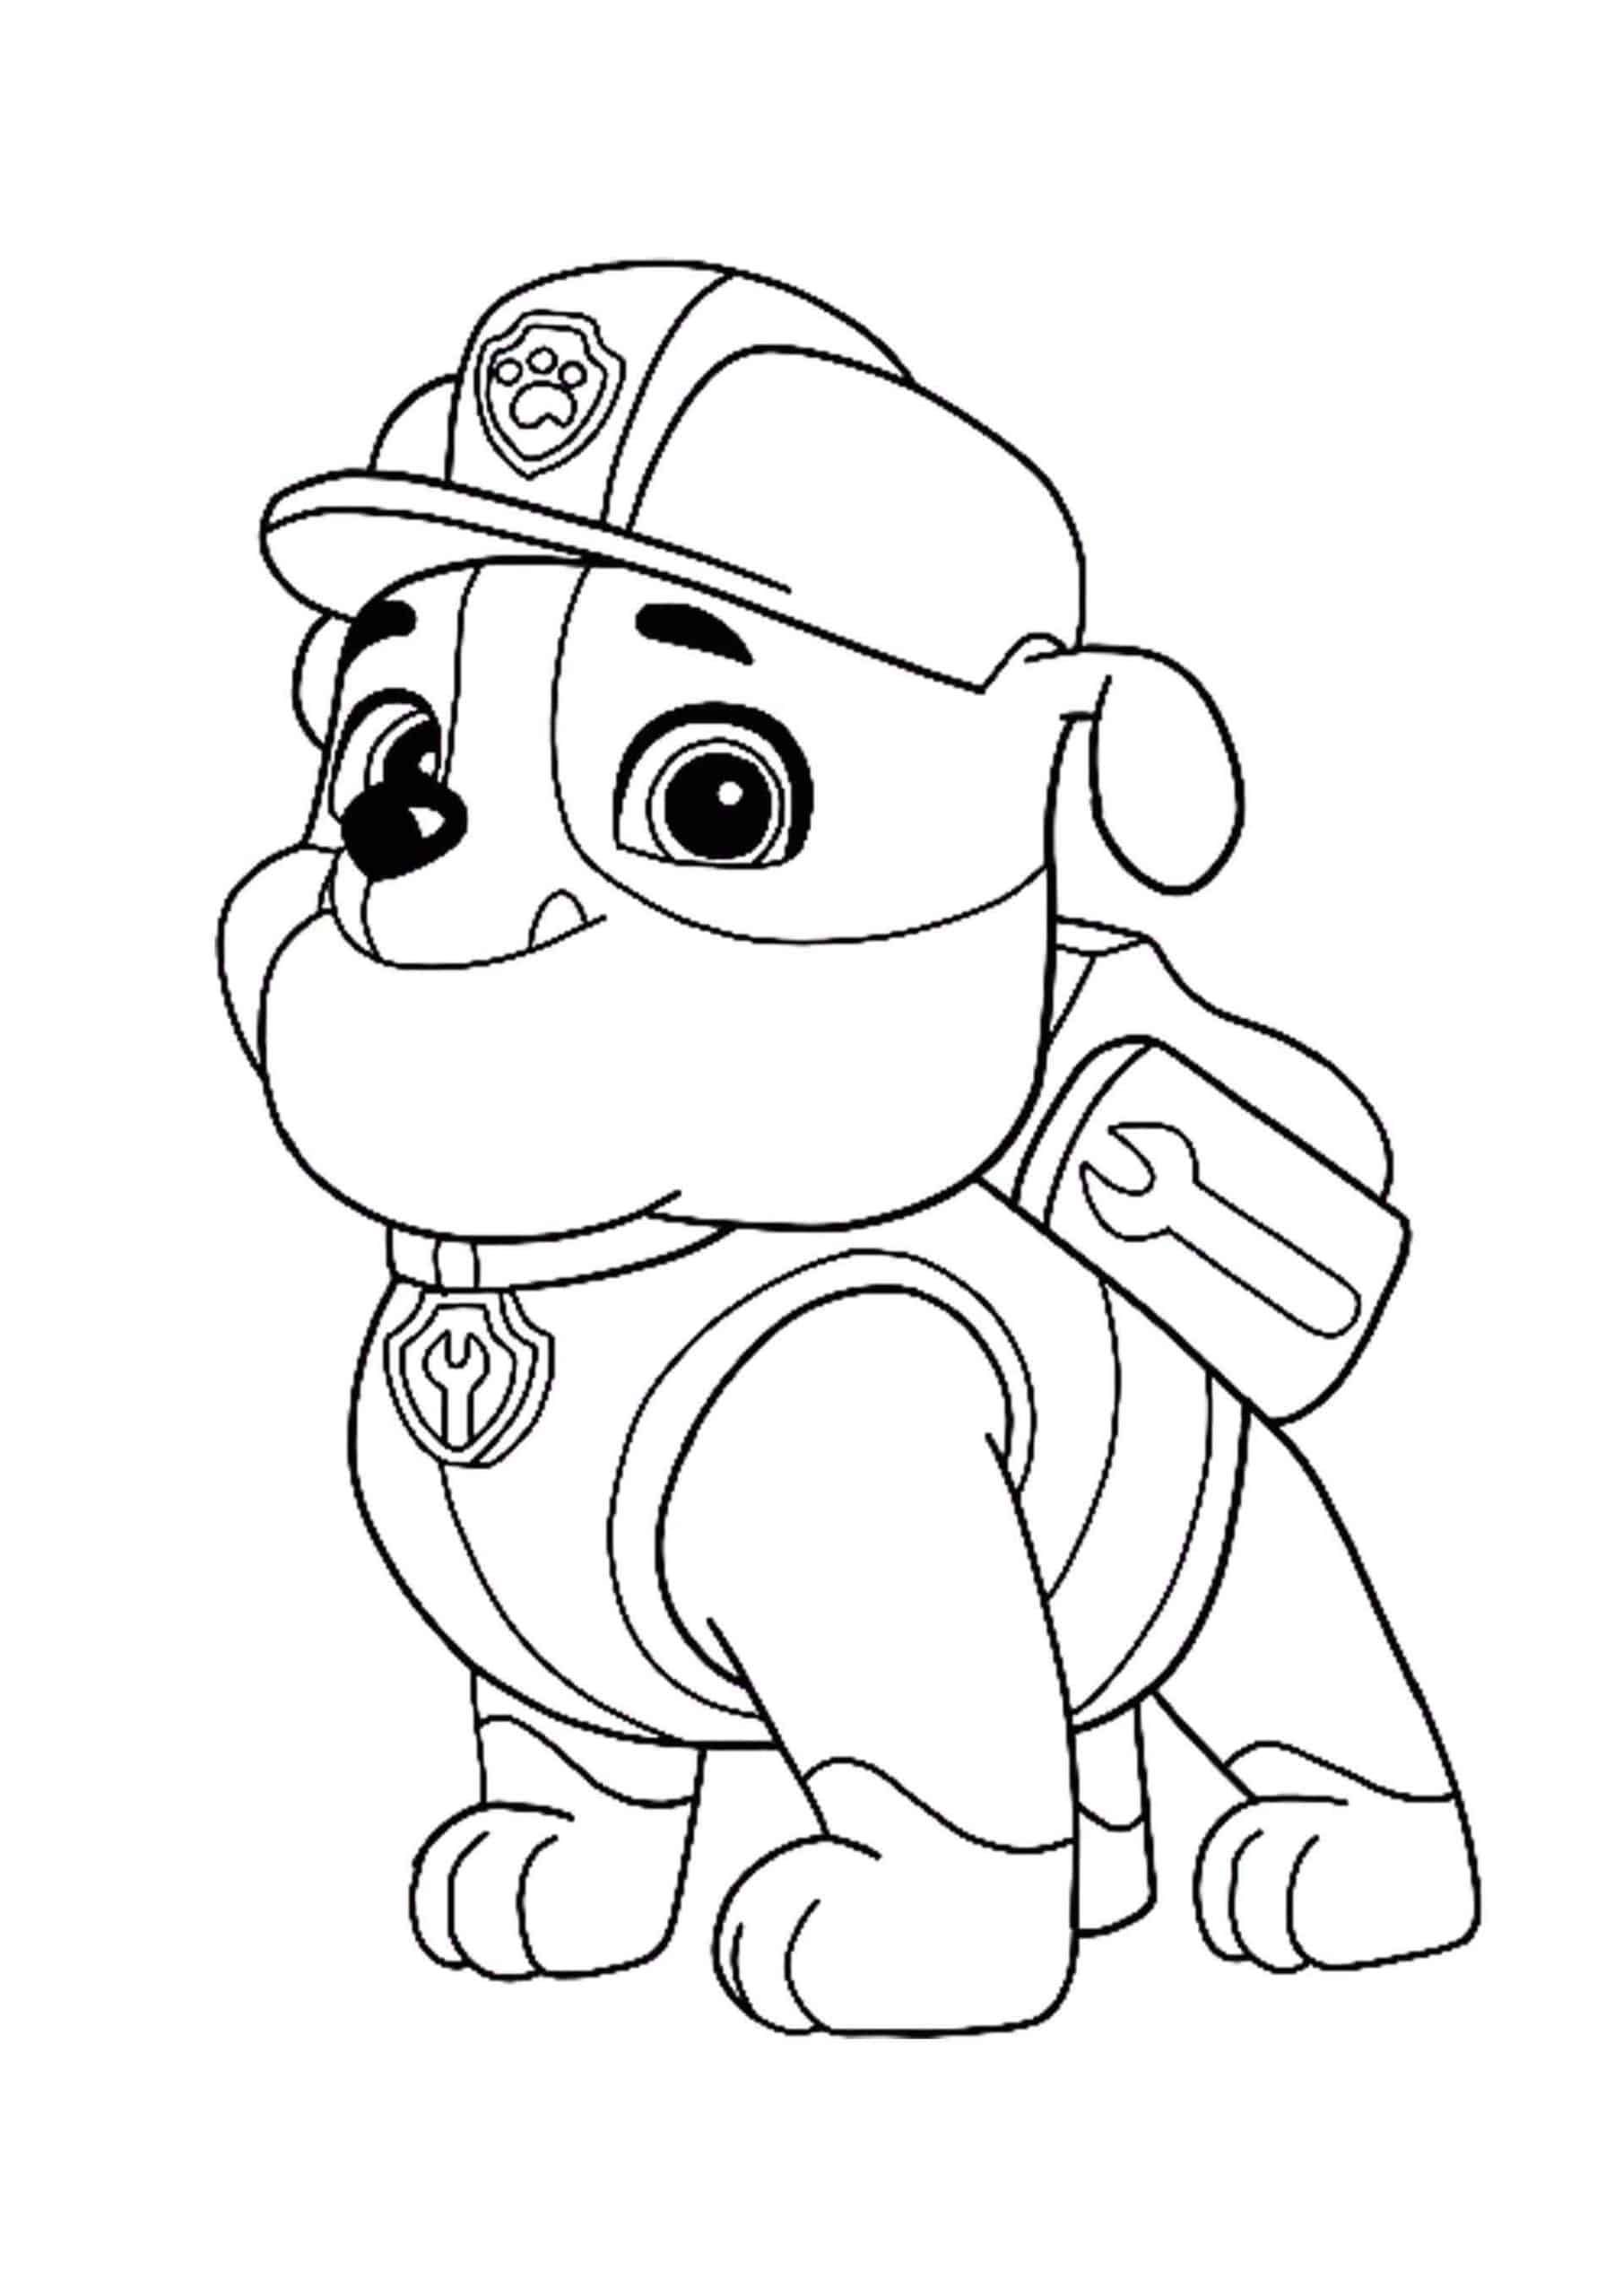 Paw Patrol Rubble coloring page | Paw patrol coloring ...